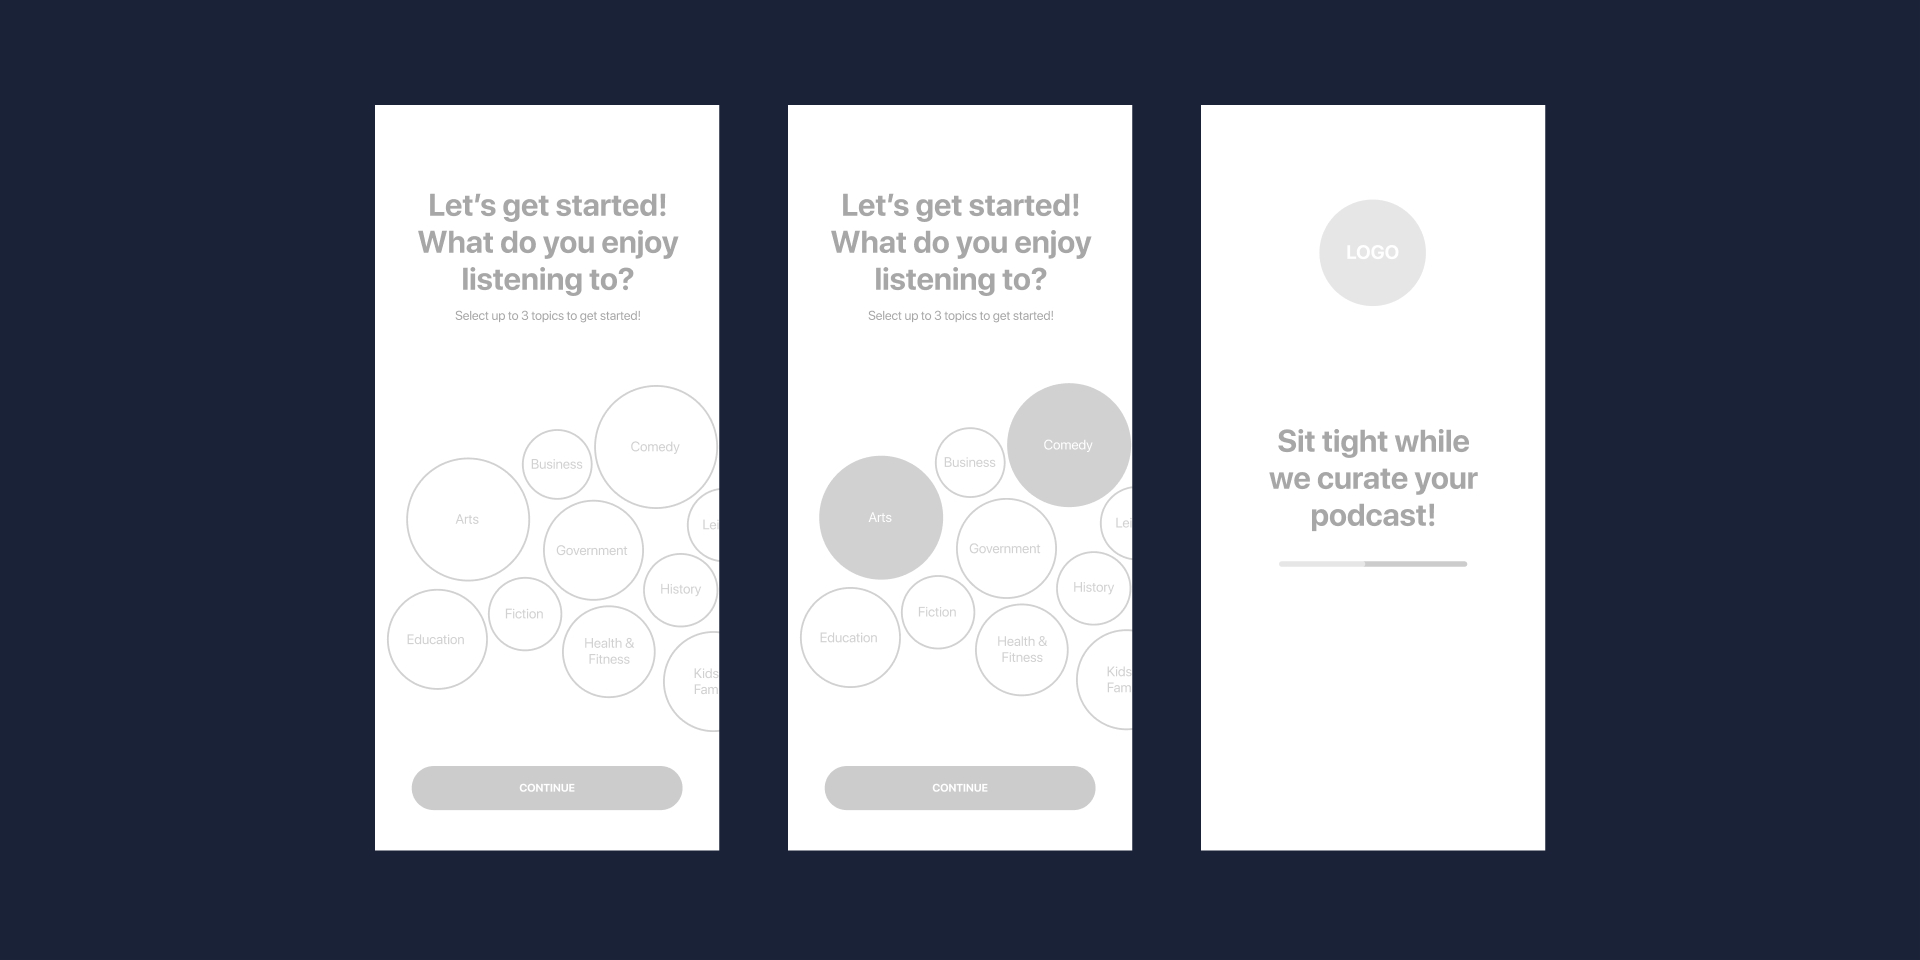 Cloudcast Case Study Wireframe Onboarding Screen